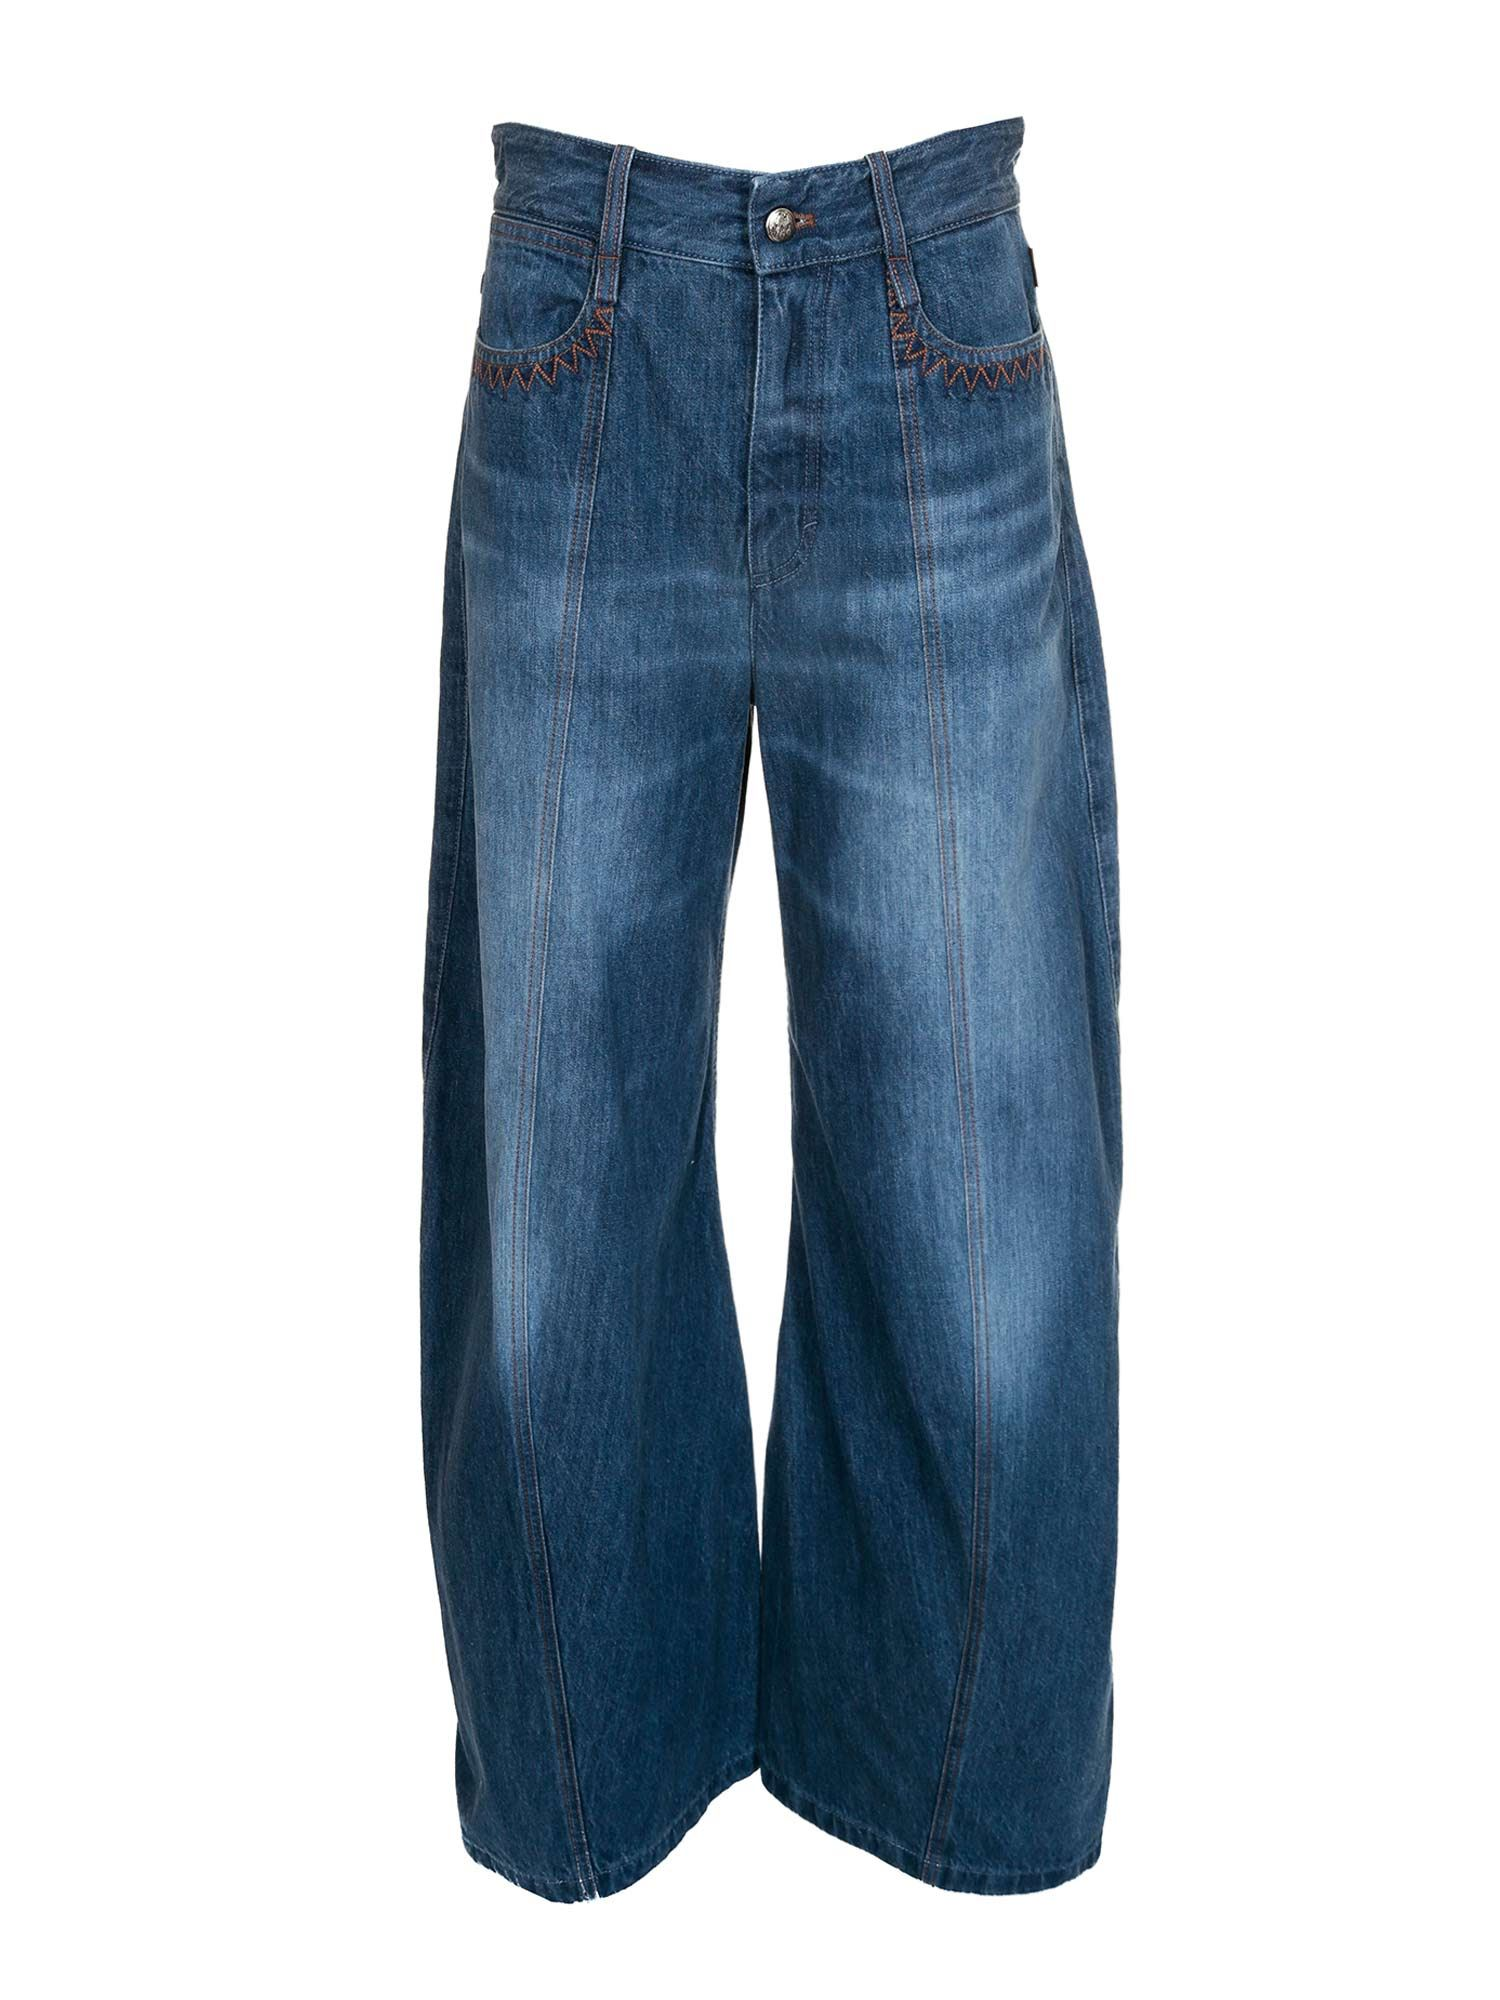 Chloé WIDE LEG JEANS IN BLUE